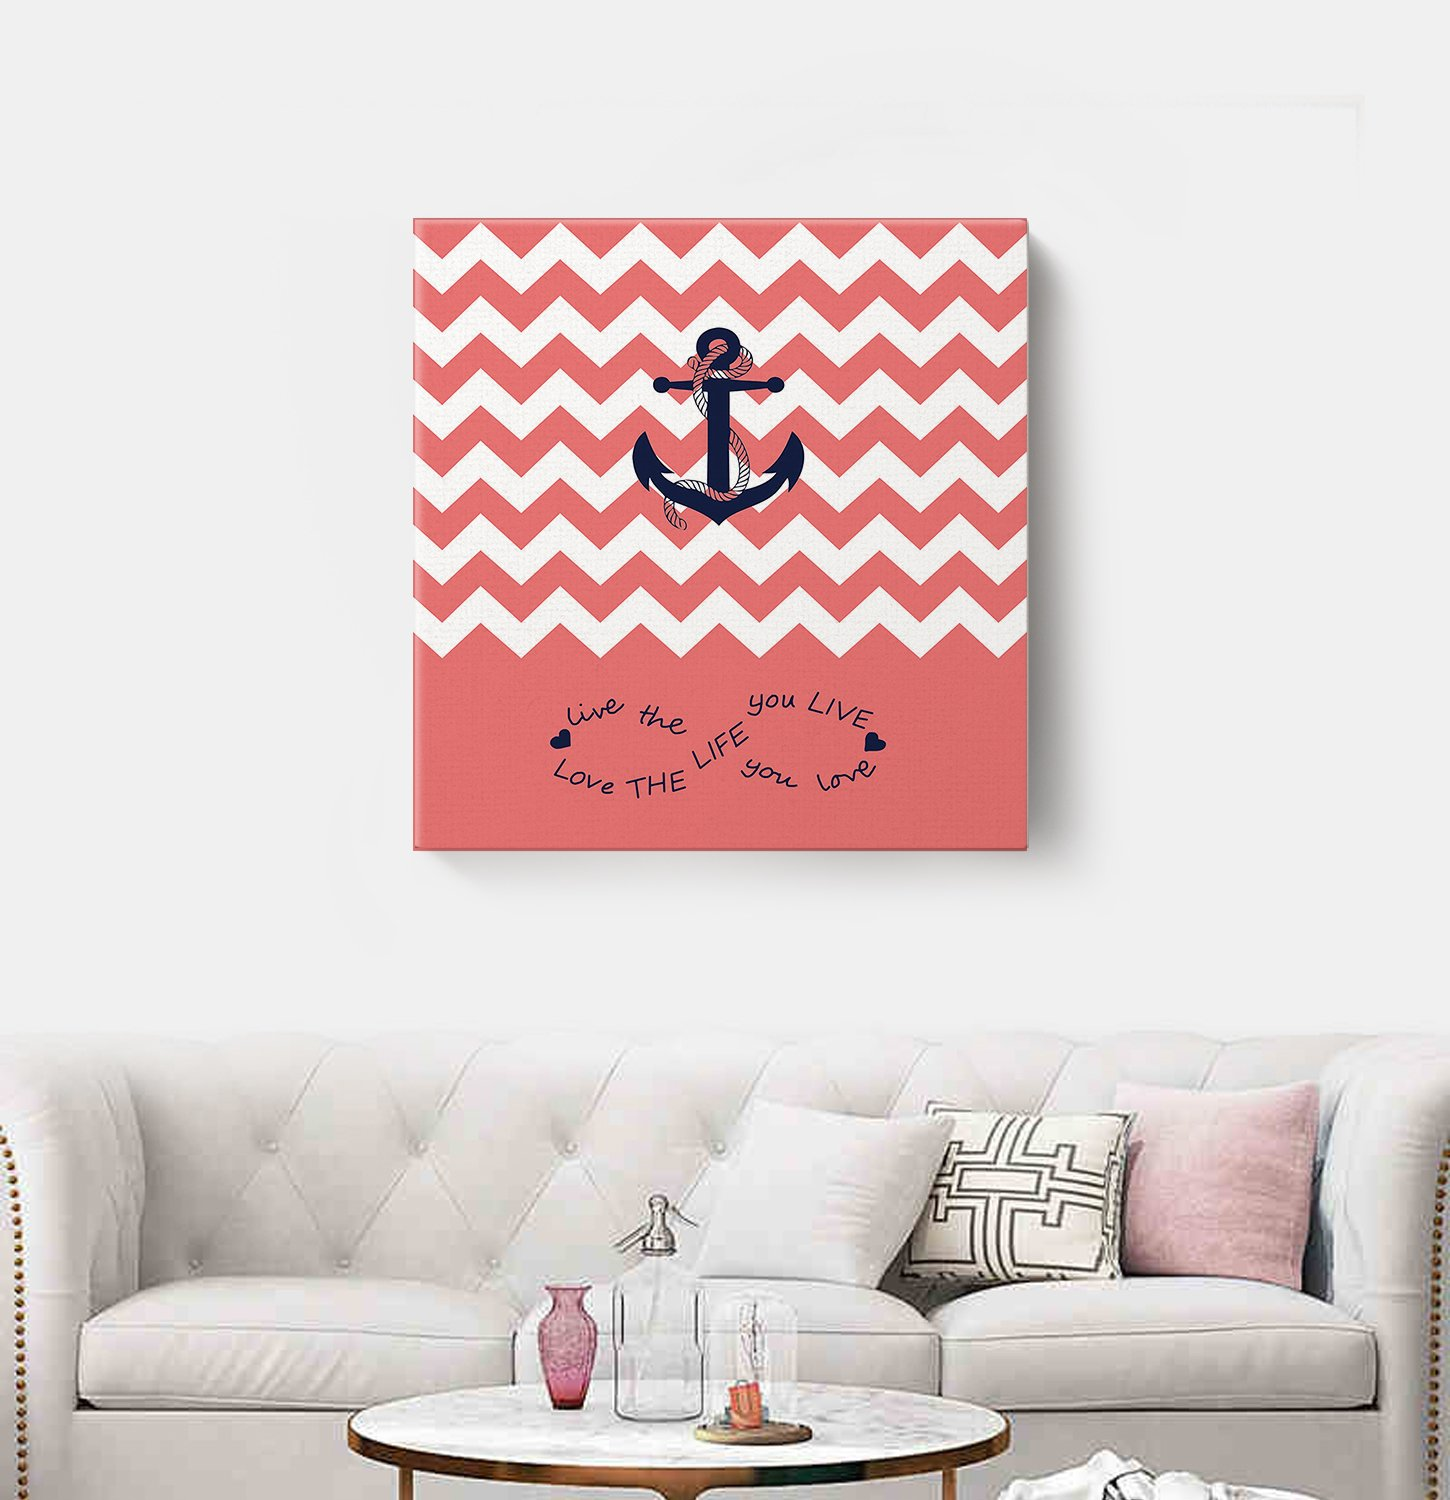 Anchor Love The Life You Love Chevron Zig Zag Ripple Coral White - Oil Painting On Canvas with Wood Frame Modern Wall Art Pictures For Home Decoration,12''x12'' by Prime Leader (Image #3)